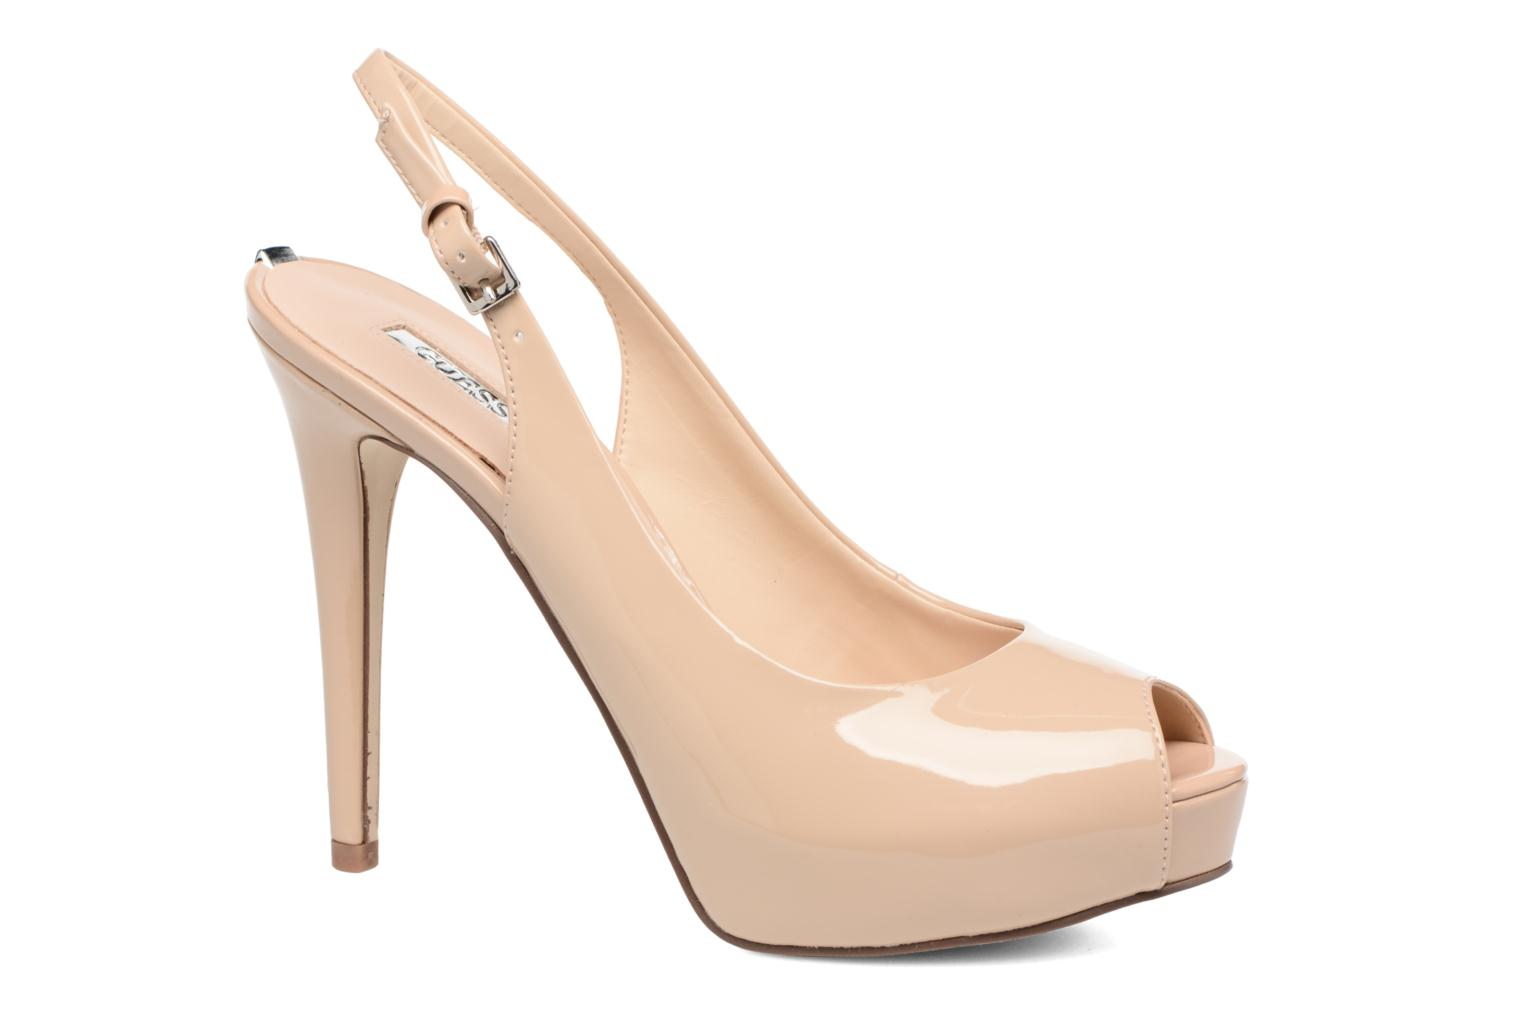 Marques Chaussure luxe femme Guess femme ELE 7 BEIGE PATENT